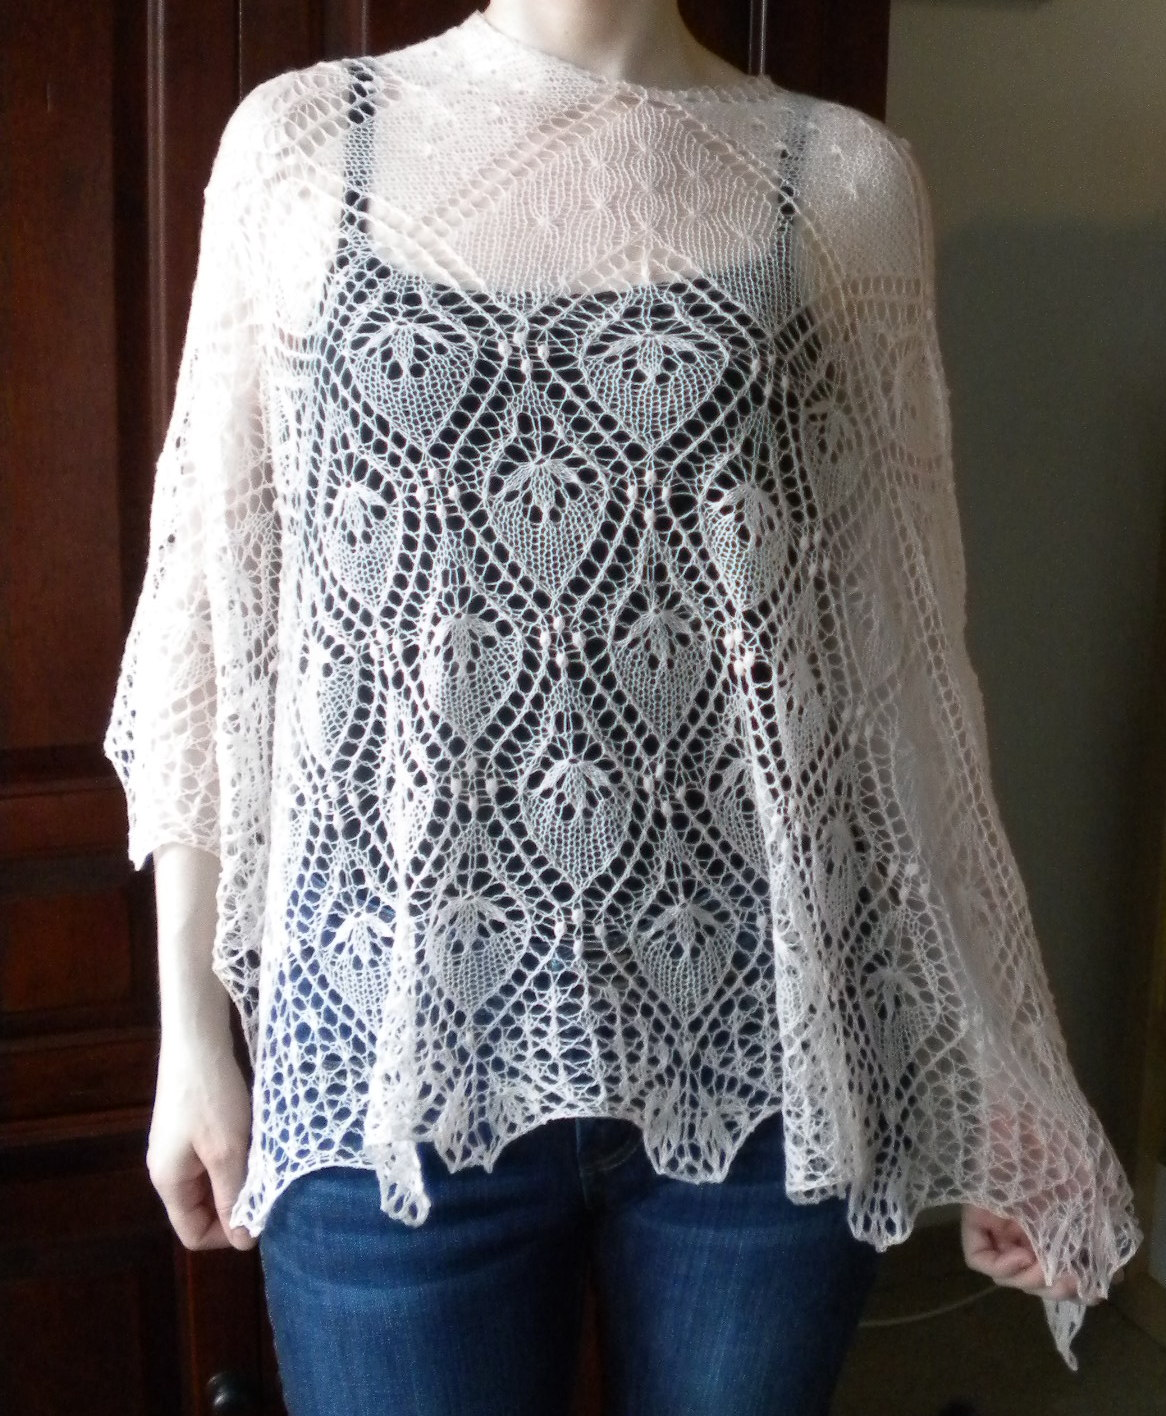 Comprehensively Quirky: Estonian Lace Shawl